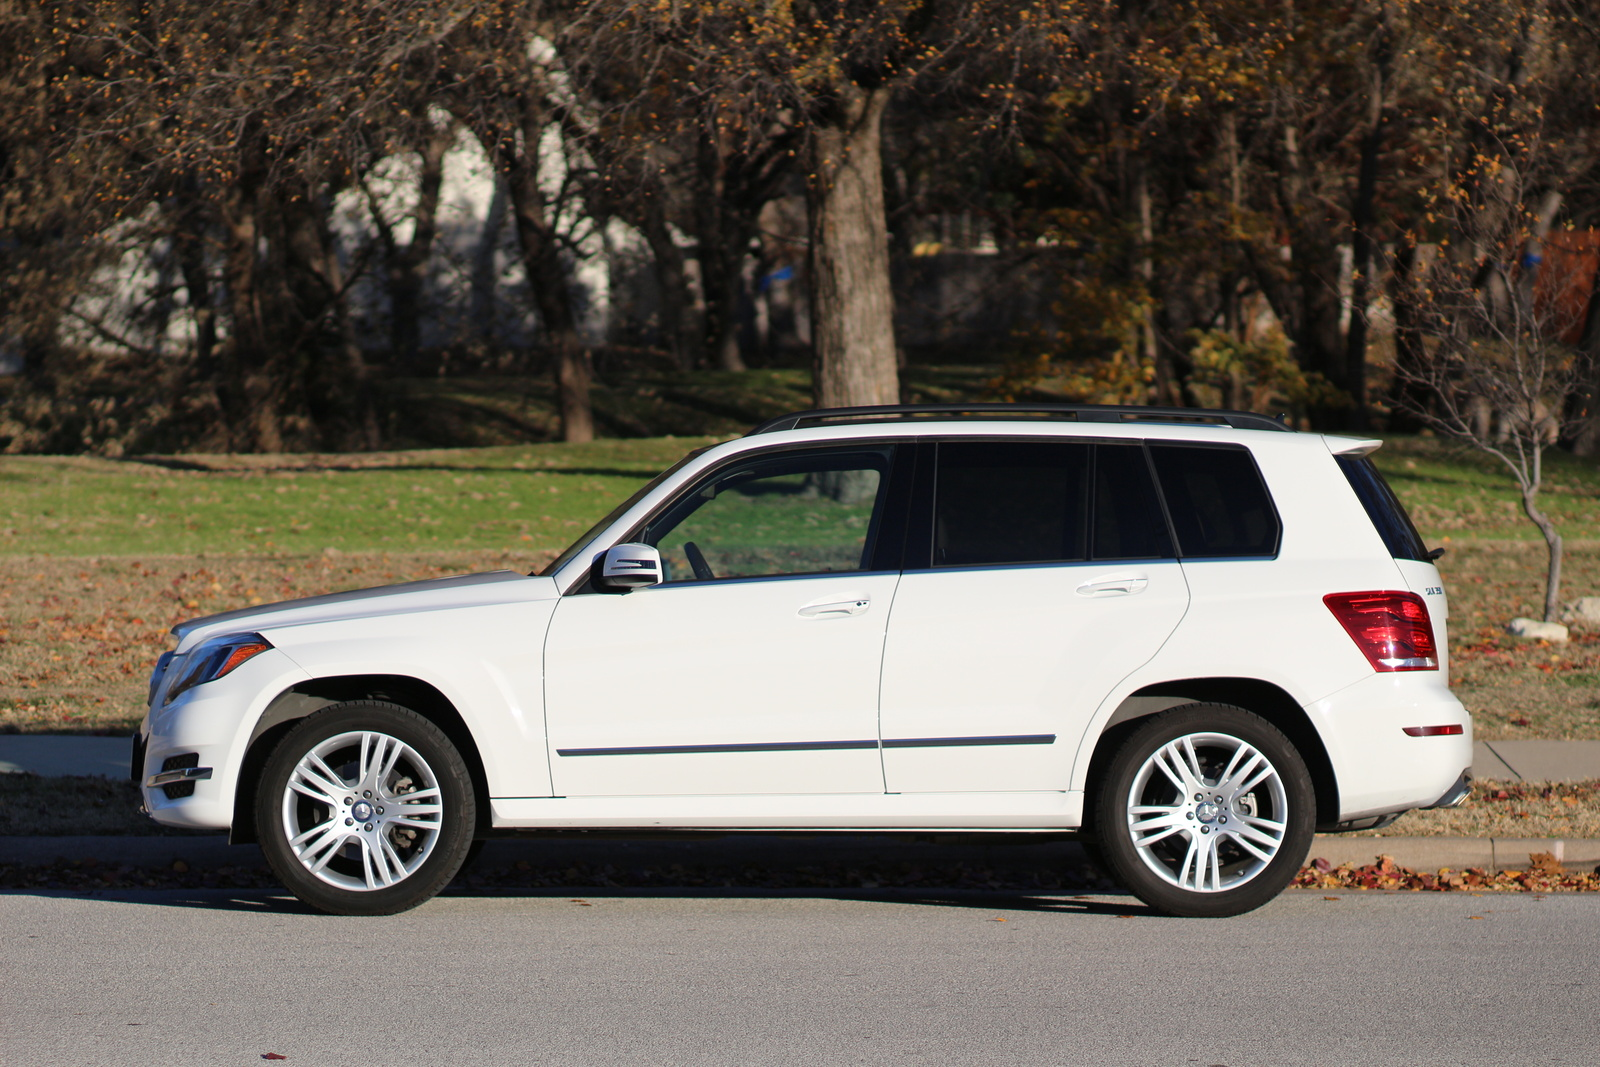 2014 mercedes benz glk class review cargurus for Mercedes benz glk class